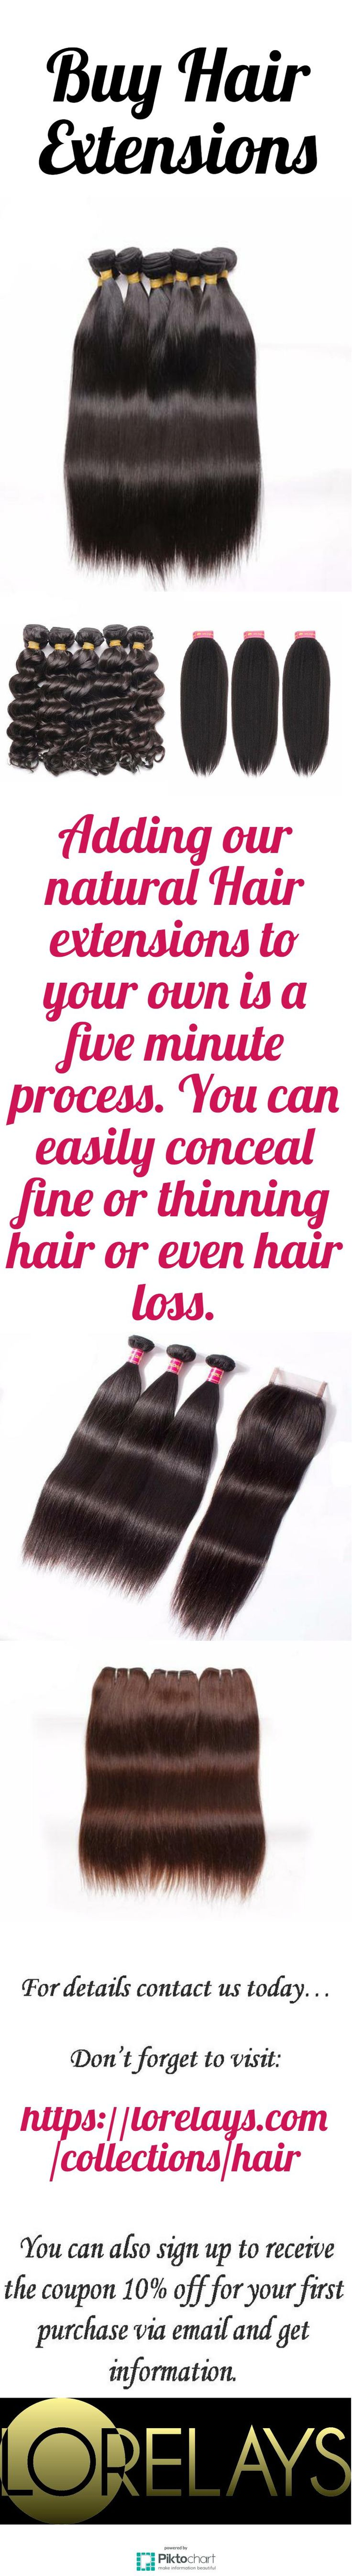 Adding our natural Hair extensions to your own is a five minute process. You can easily conceal fine or thinning hair or even hair loss. To Buy Hair extensions online, visit: https://lorelays.com/collections/hair